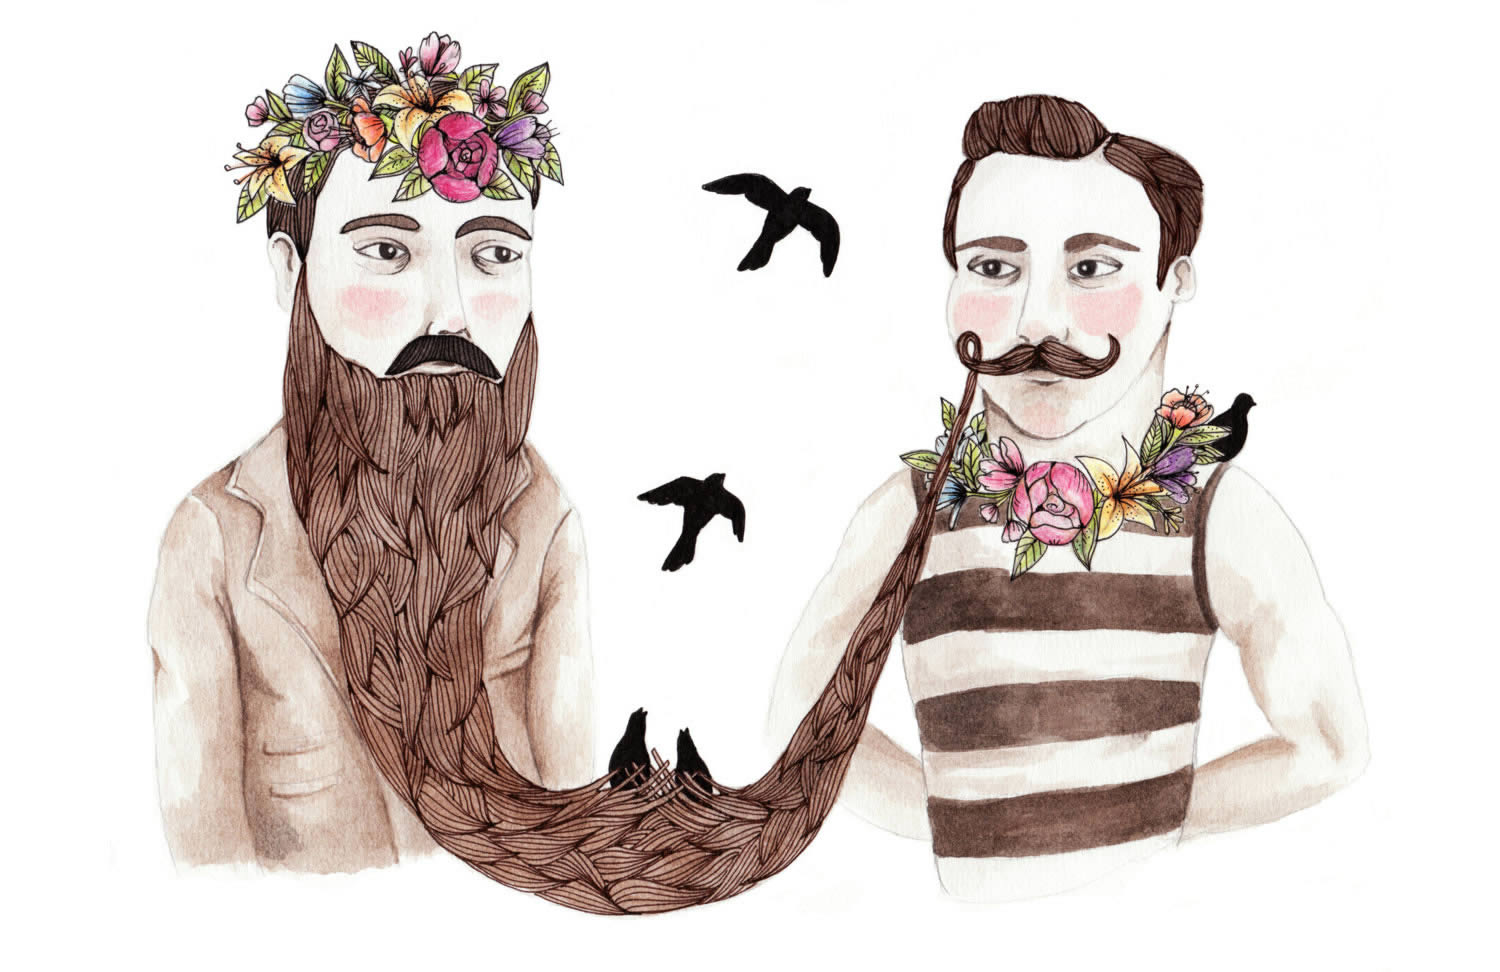 moustache men with flowers and birds by brooke weeber